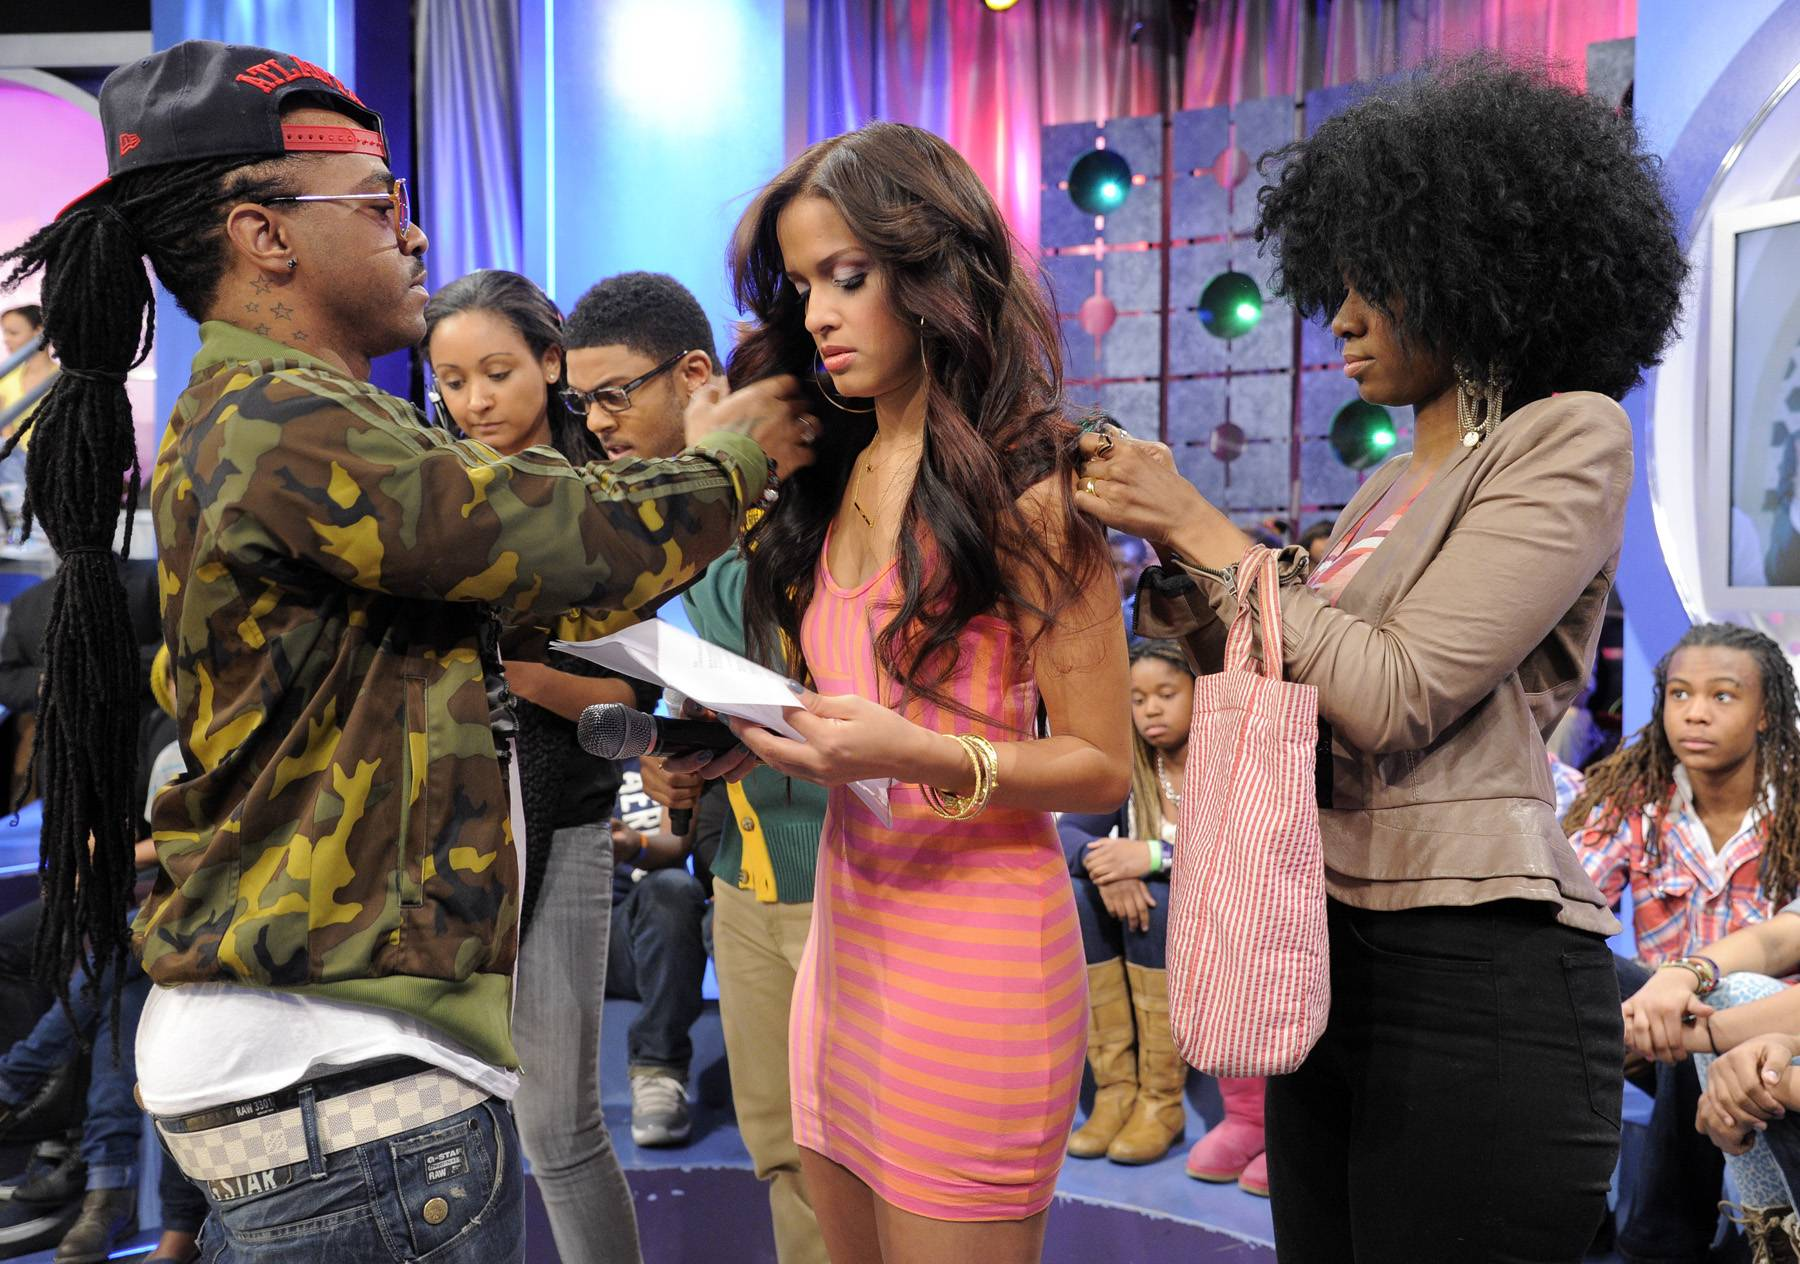 Just A Touch - Rocsi Diaz get touch ups by Q and goes over script during a commercial break at 106 & Park, April 12, 2012. (Photo: John Ricard / BET)